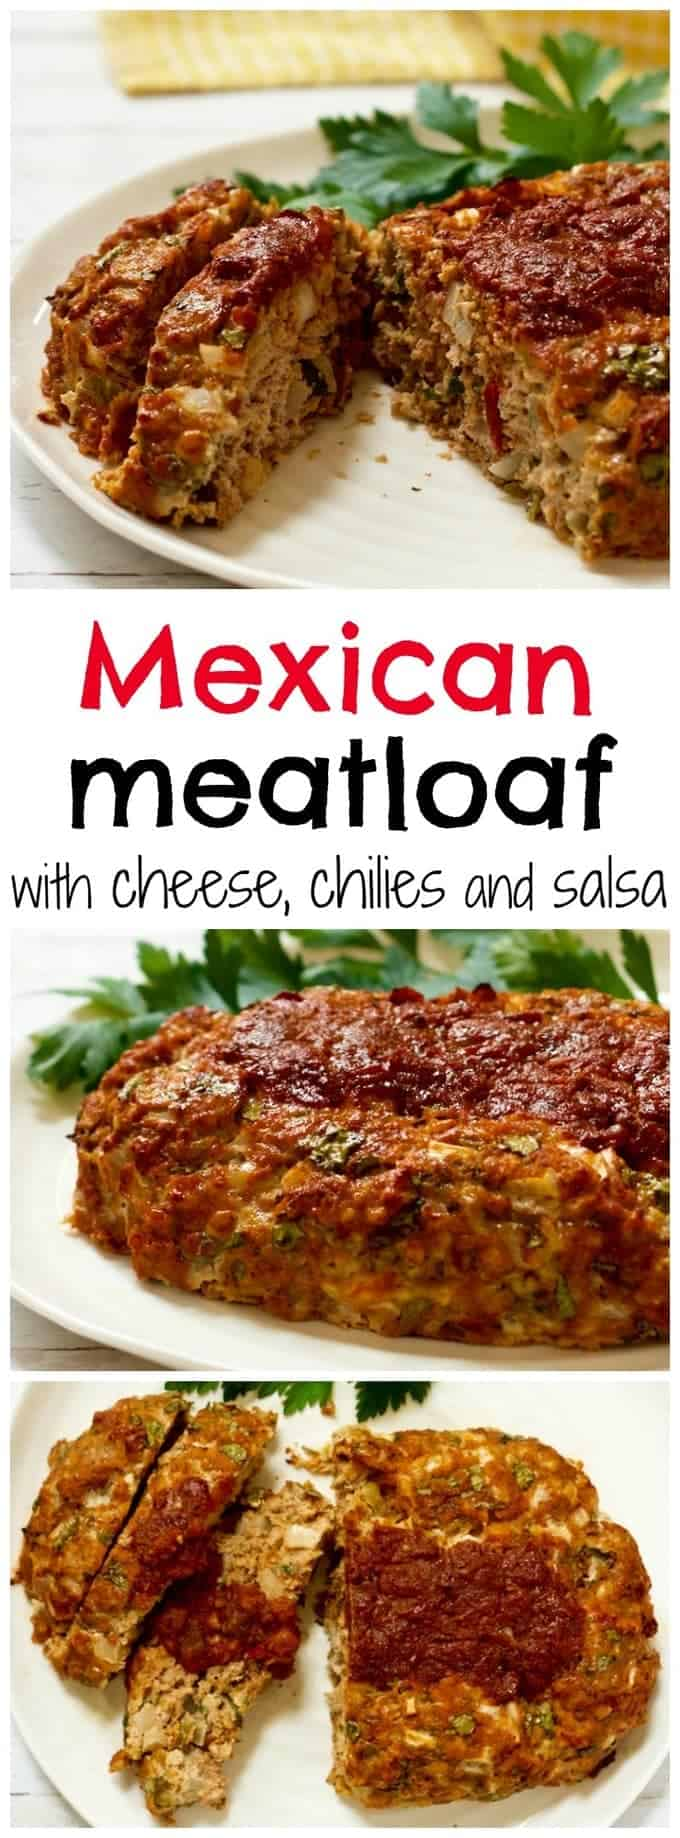 Mexican meatloaf - Family Food on the Table